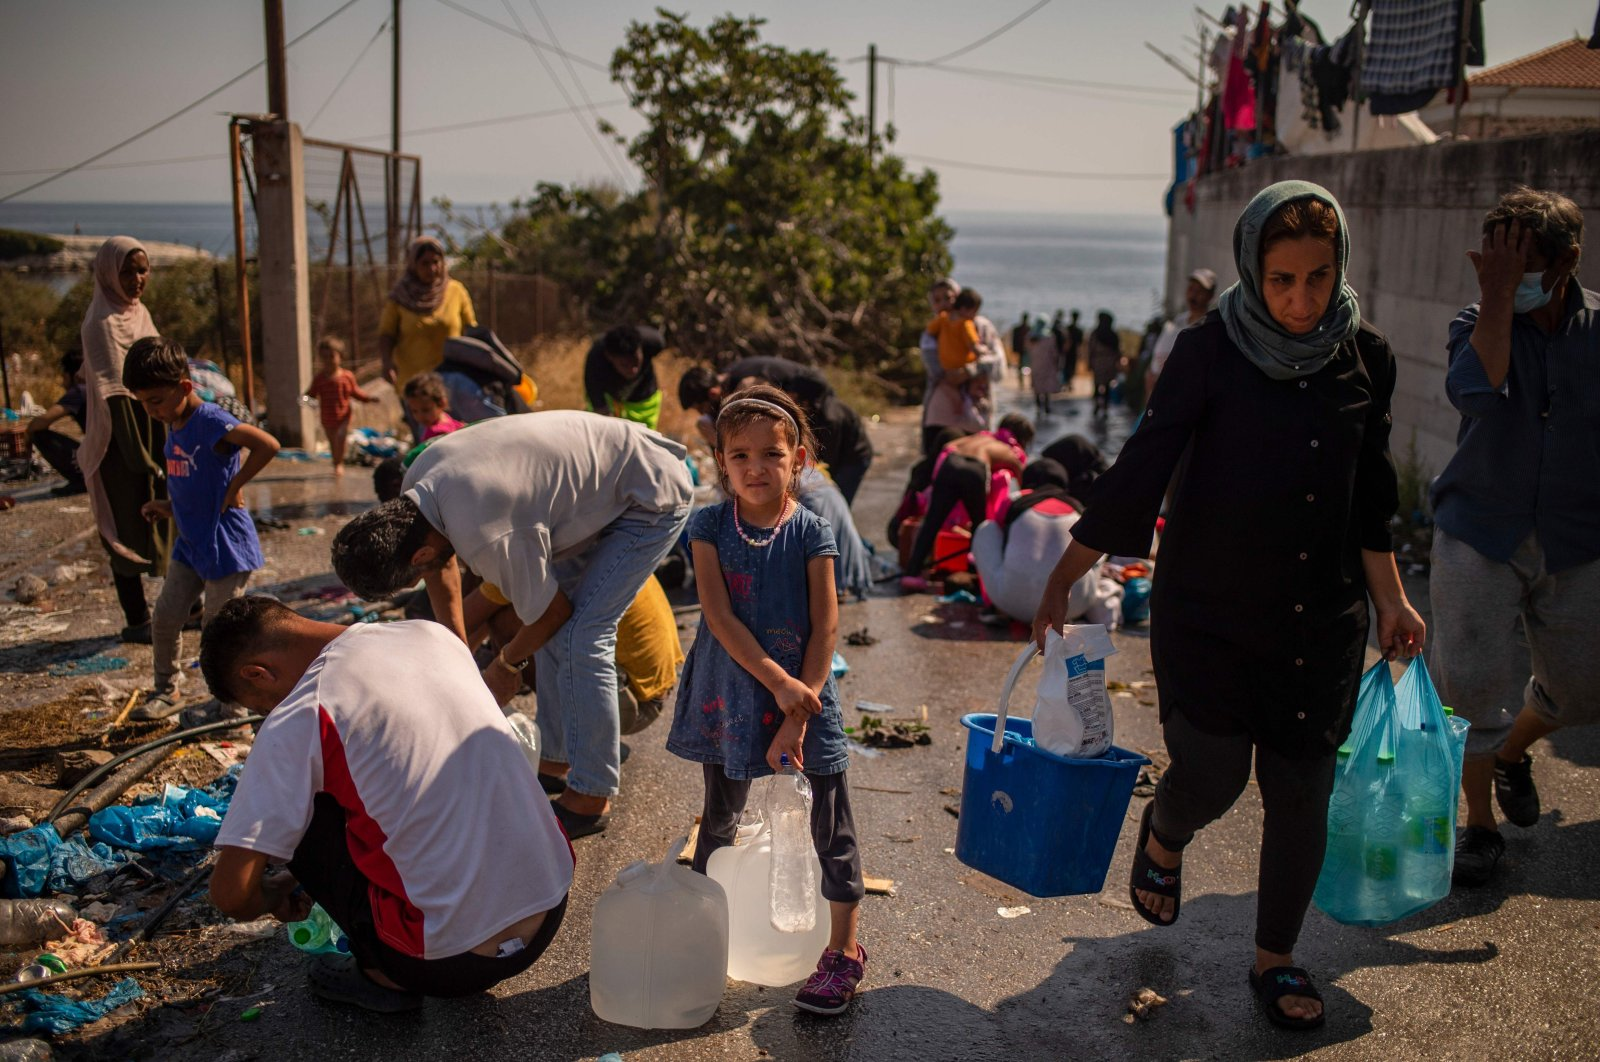 A girl waits to fill bottles with water near a temporary migrant camp on the Greek Aegean island of Lesbos, Sept. 16, 2020. (AFP Photo)